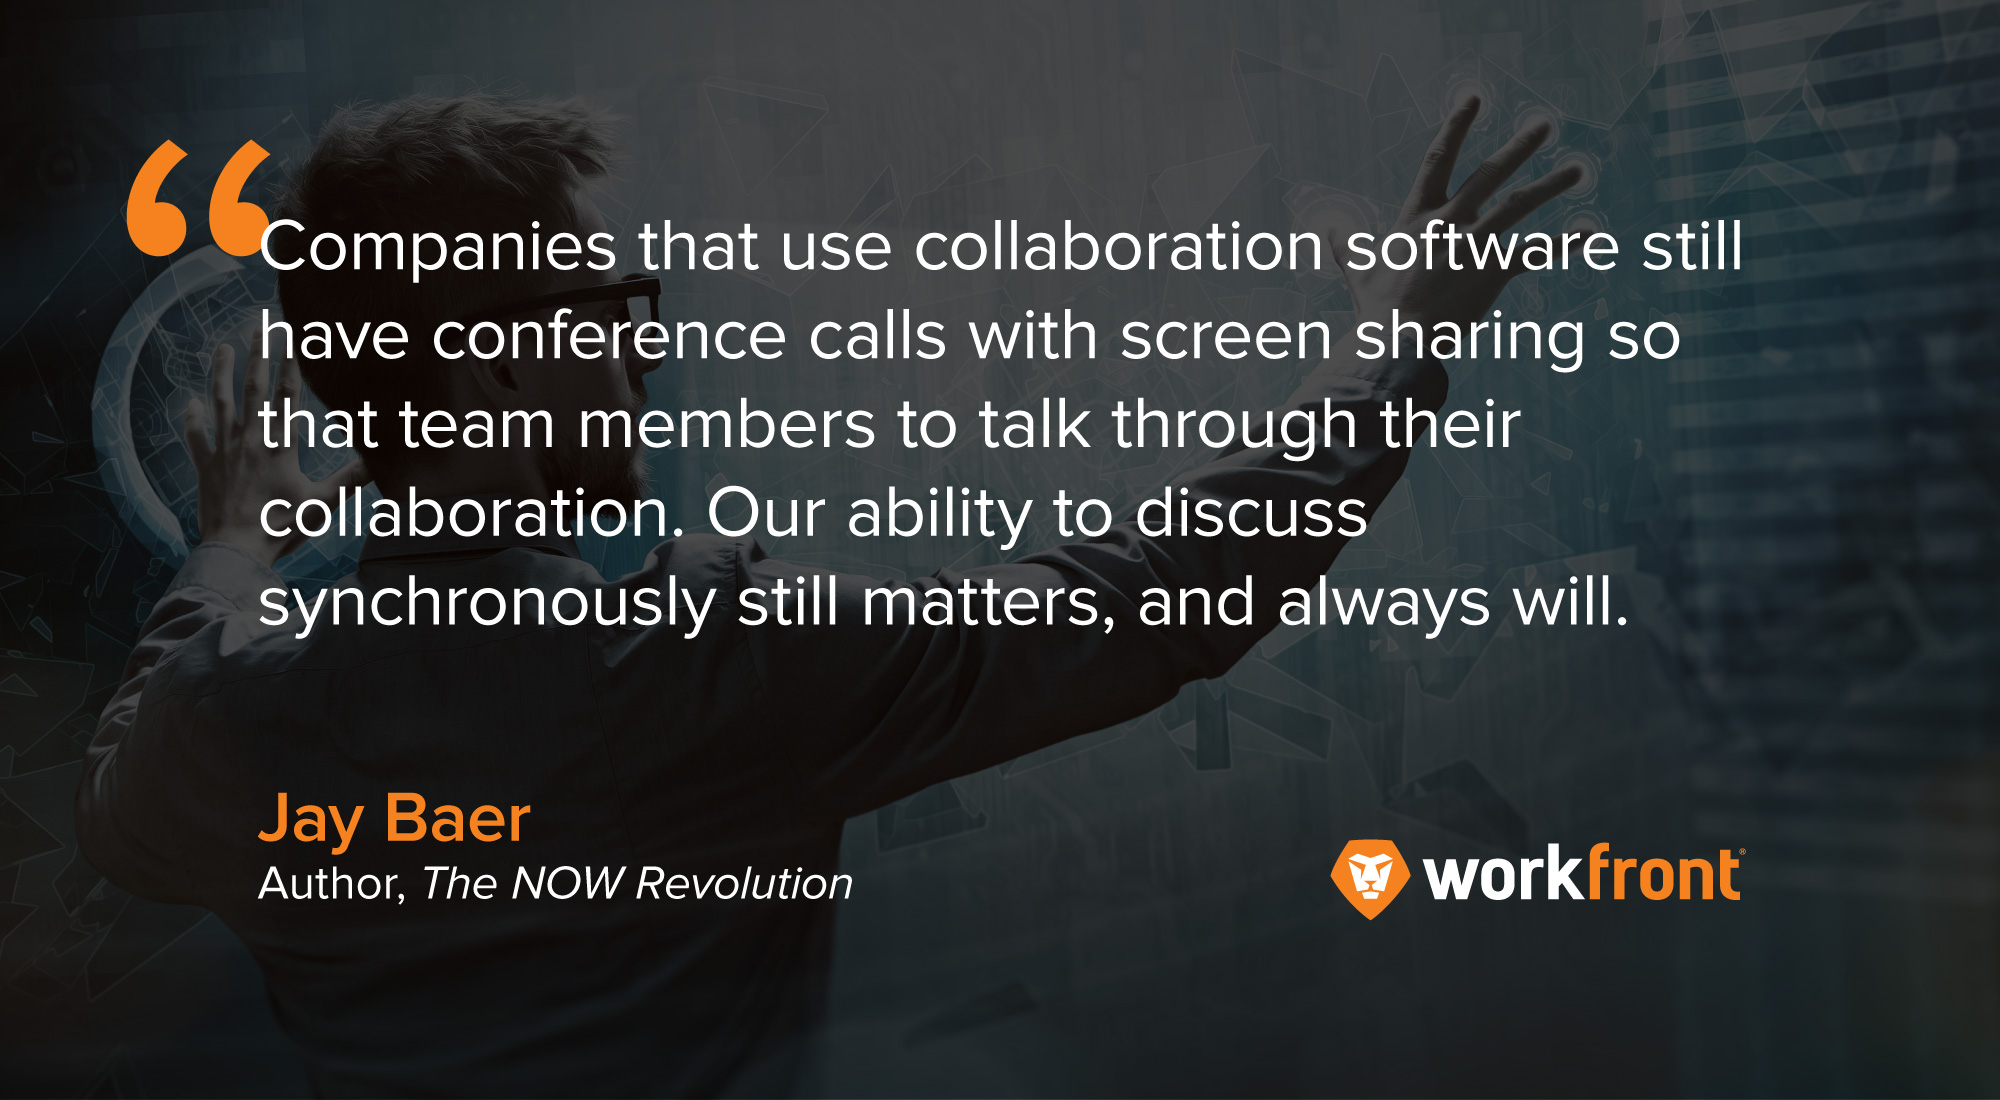 jay baer quote collaboration software